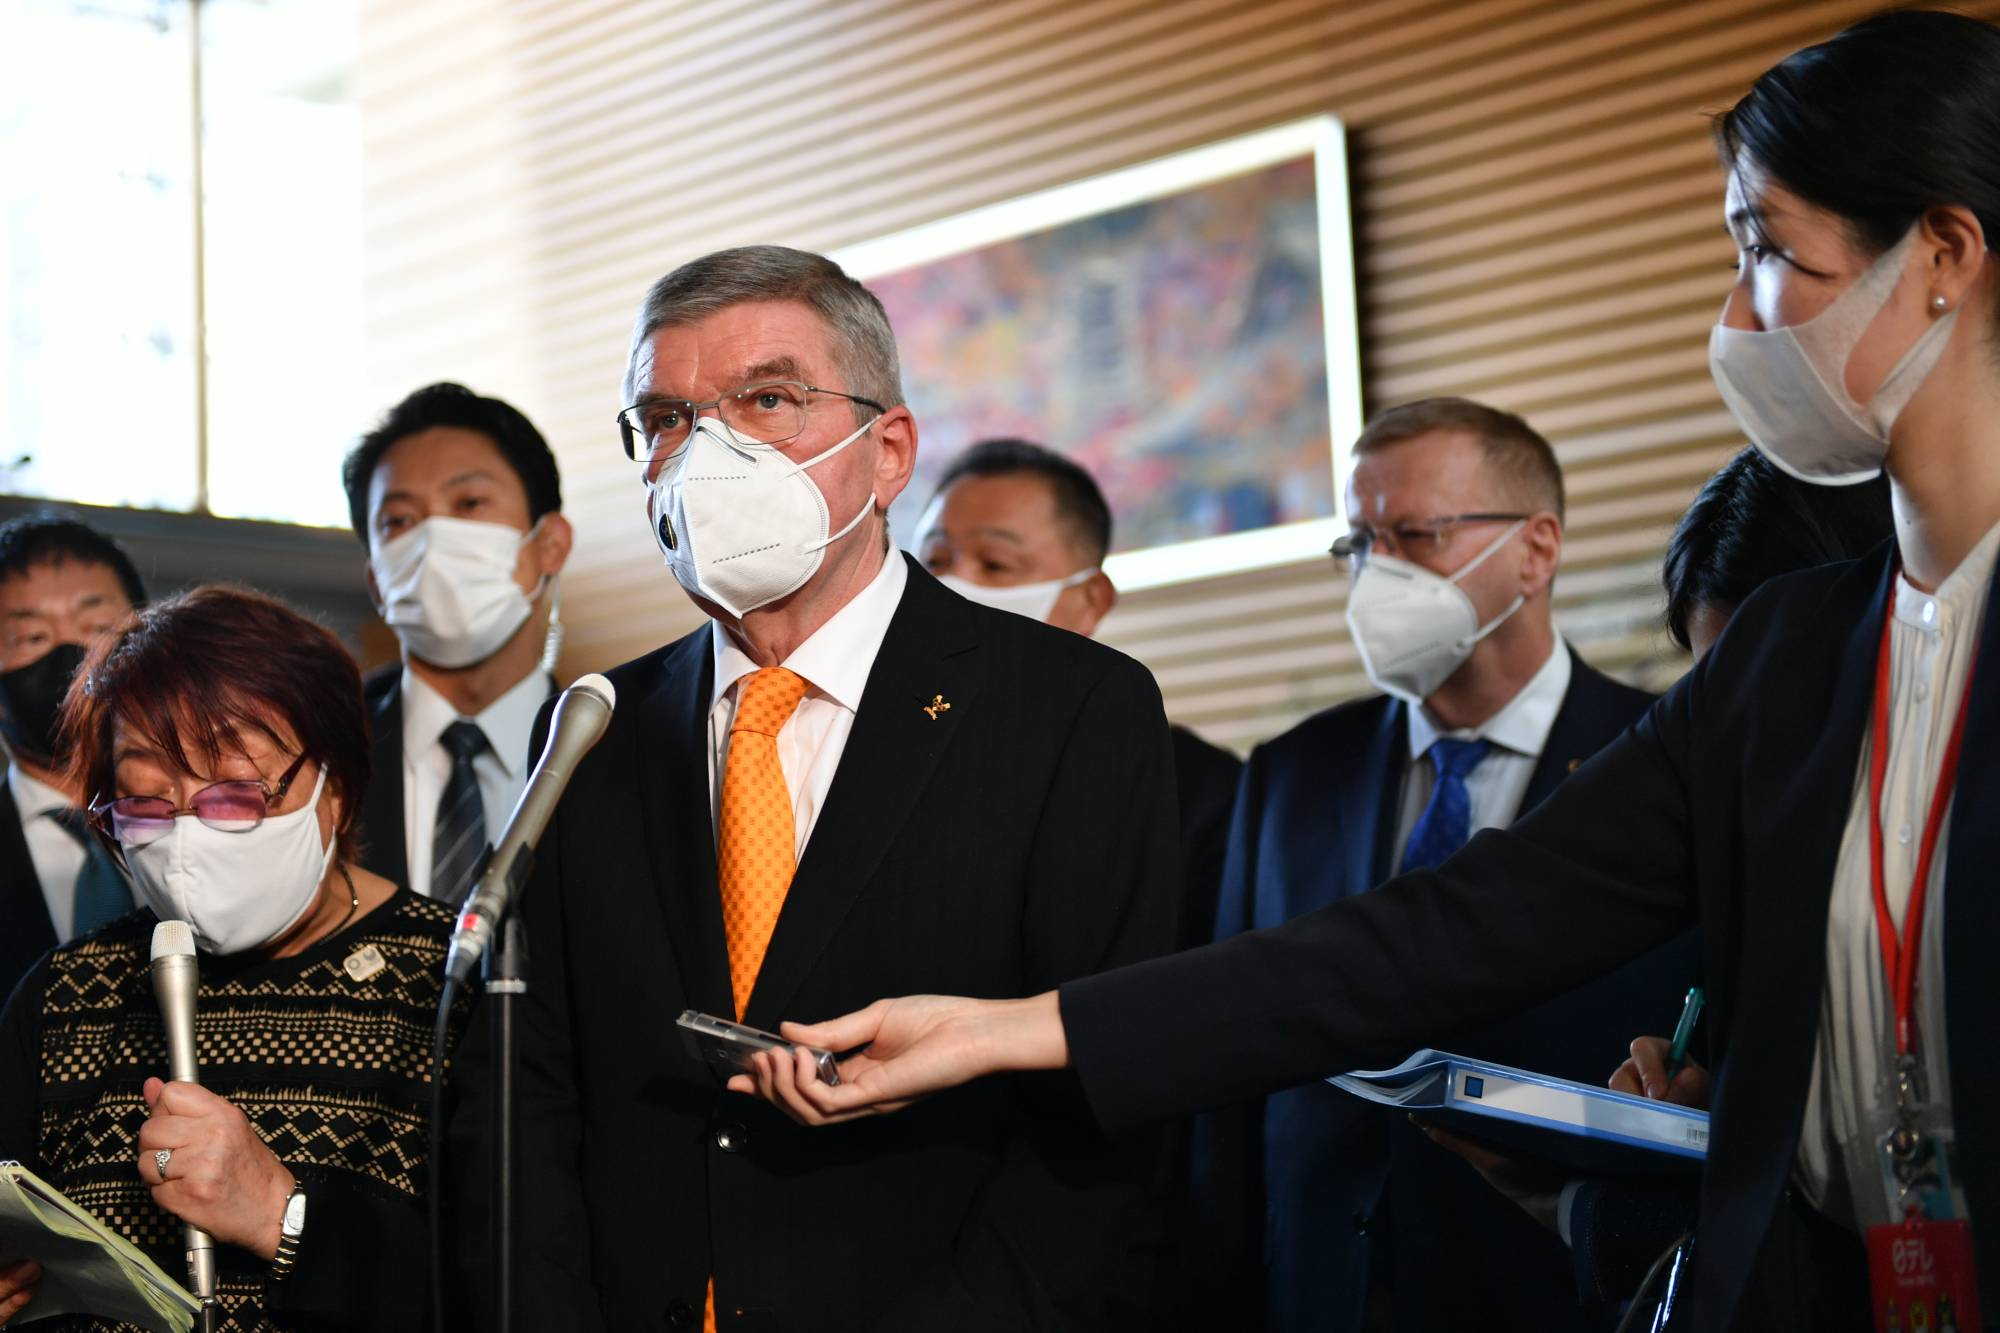 The 2020 Olympic and Paralympic Games will be 'a light at the end of the tunnel,' said Thomas Bach, president of the International Olympic Committee, speaking to reporters Monday. | RYUSEI TAKAHASHI